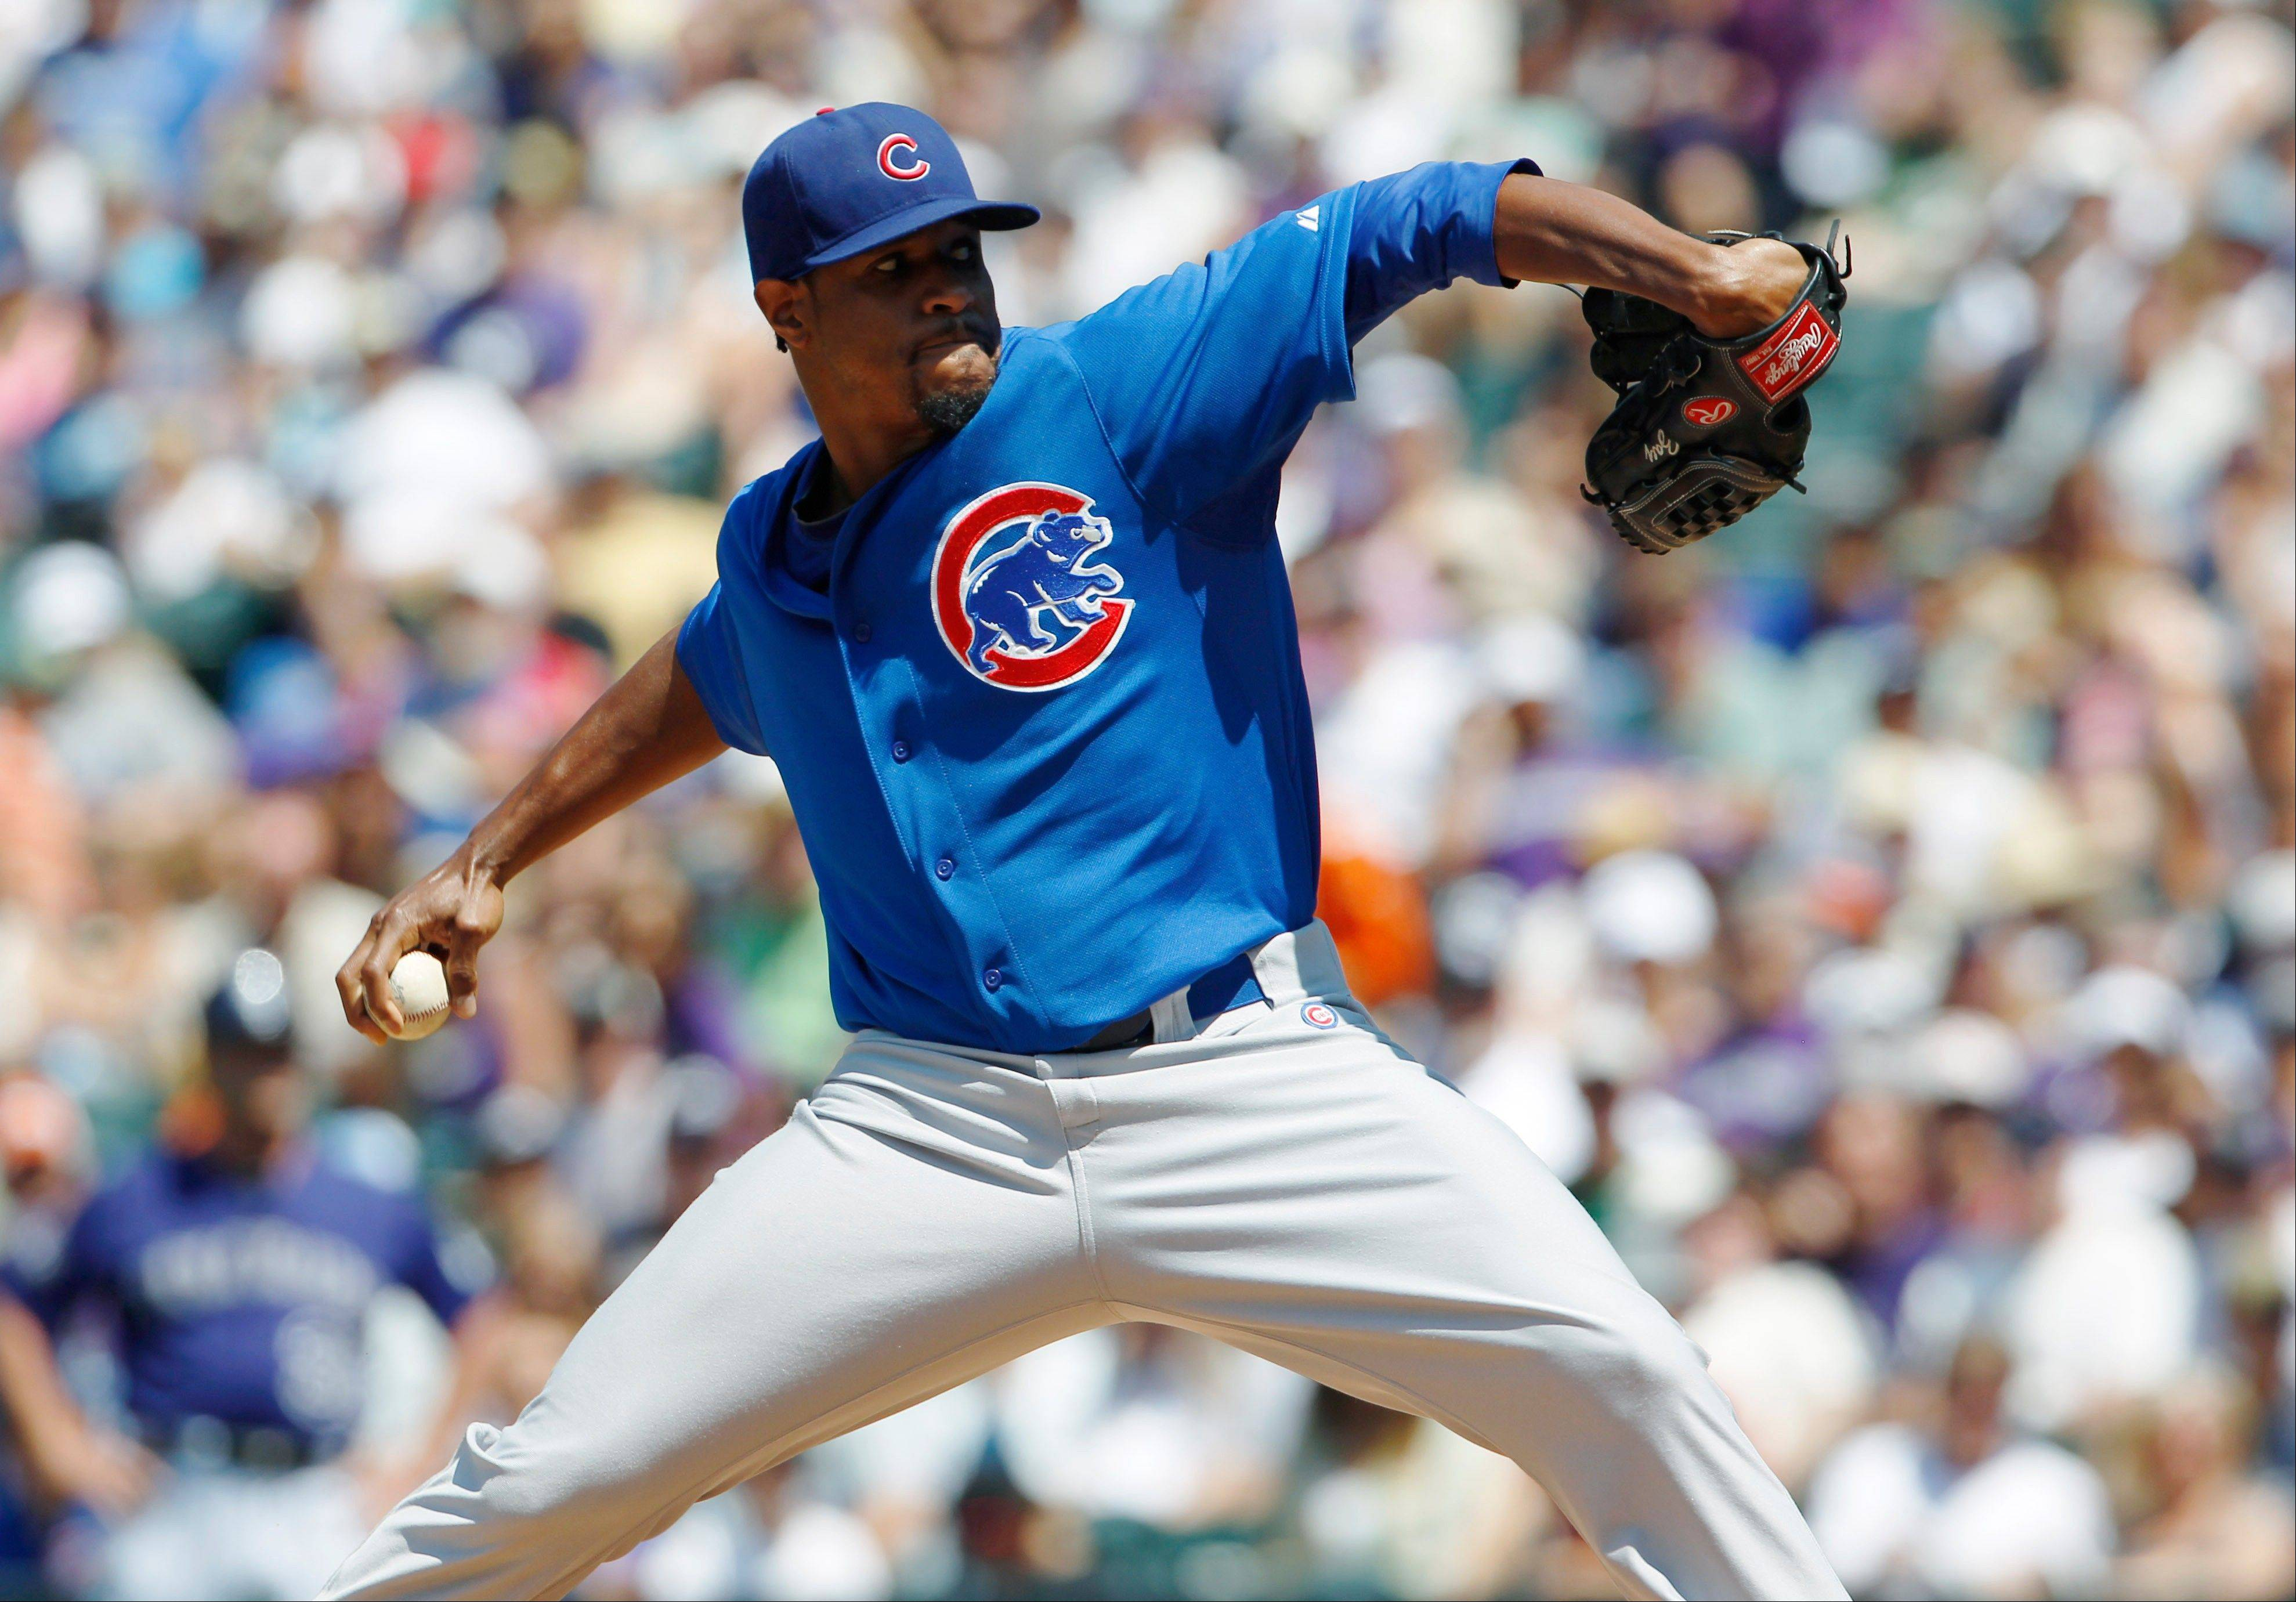 Cubs starting pitcher Edwin Jackson works against the Colorado Rockies in the first inning of Sunday's game in Denver.